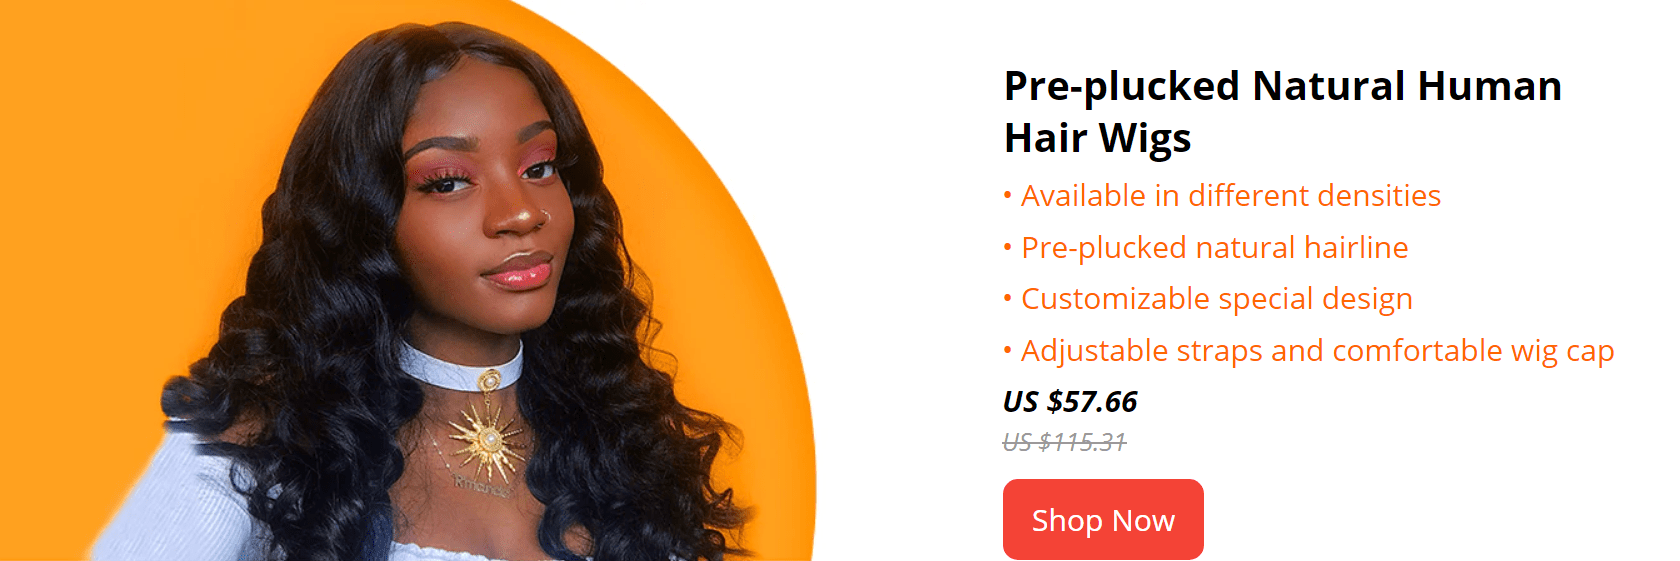 Lace Wigs Lace Front Human Hair Wigs Pre Plucked 130% 150% 180% 250% Density Brazilian Body Wave Wigs For Women Remy Alipearl Hair Human Hair Lace Wigs